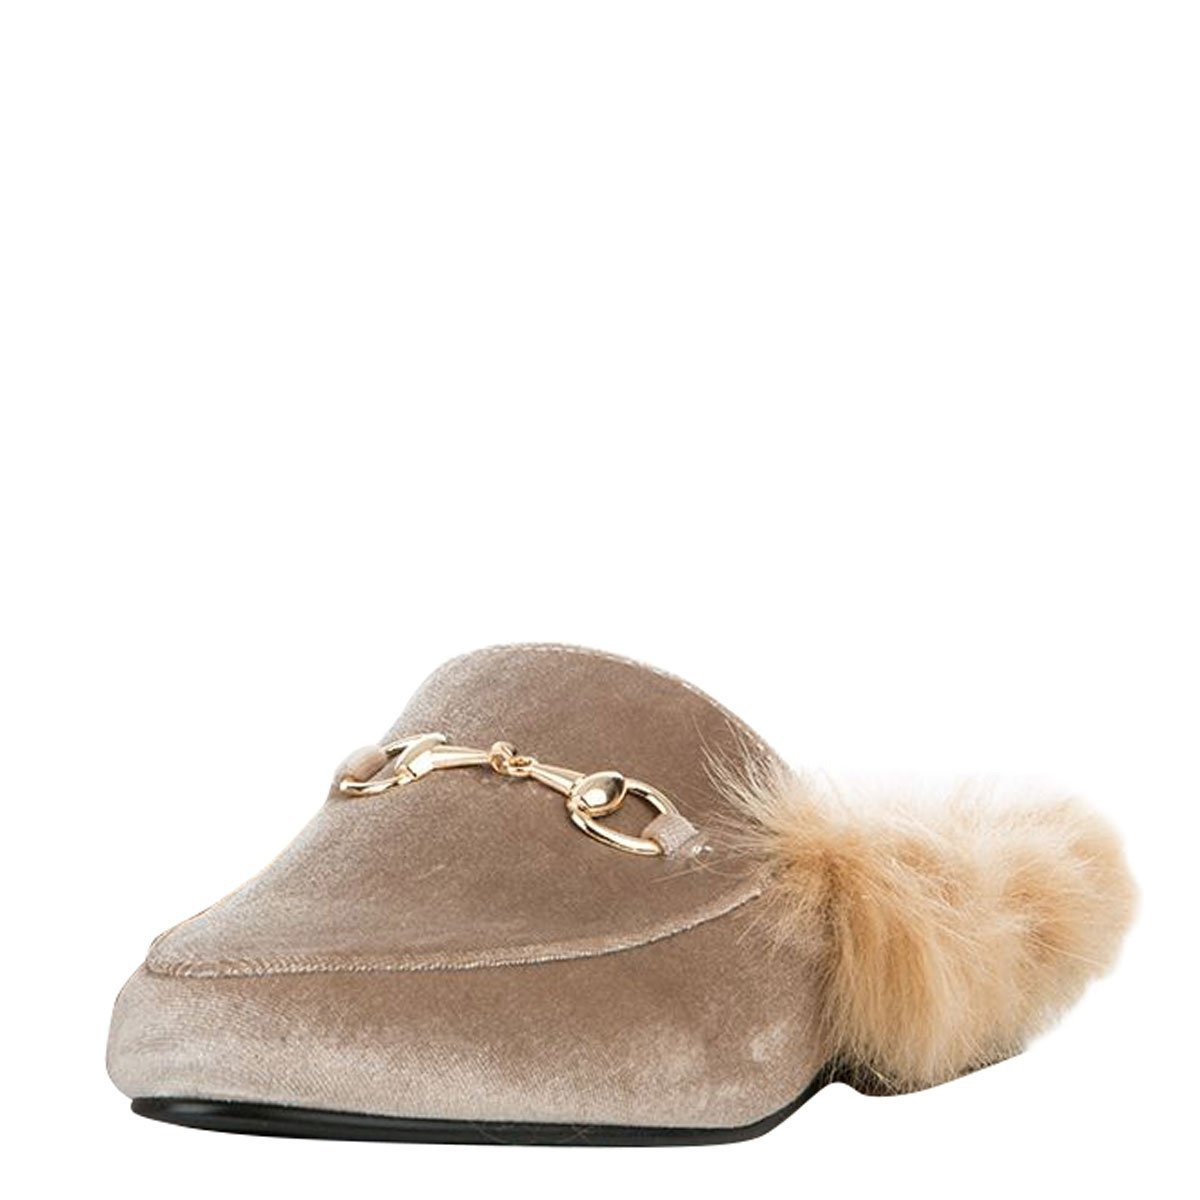 CAPE ROBBIN Womens Round Toe Faux Fur Lined Horsebit Slip On Loafer Mules Flat Shoes Slipper 8.5 Nude